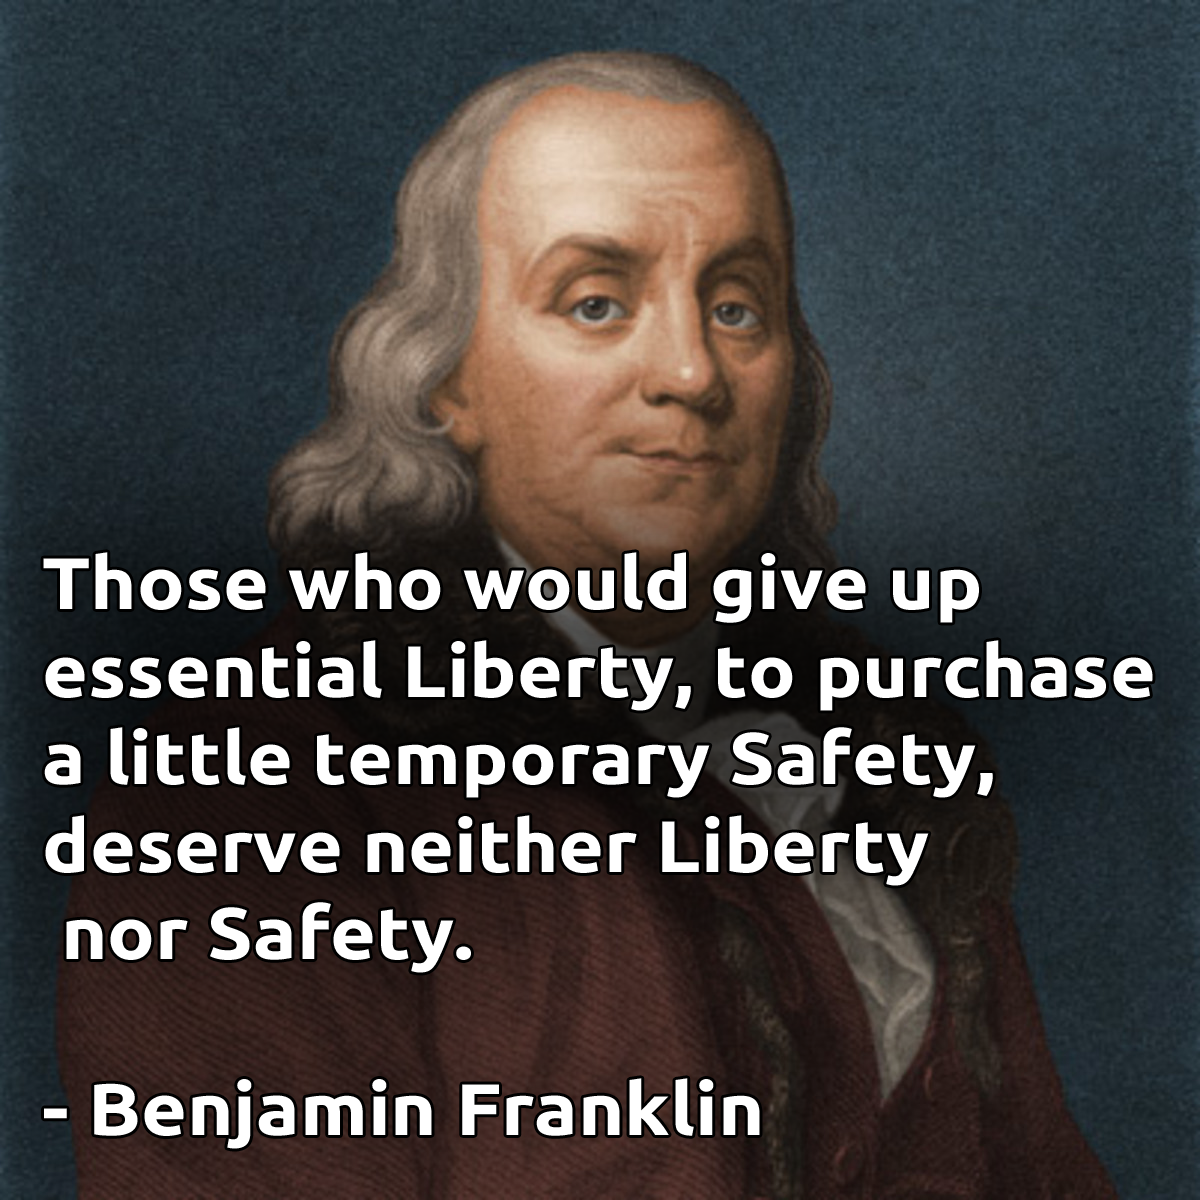 Those who would give up essential Liberty, to purchase a little temporary Safety, deserve neither Liberty nor Safety. . ,v - https://inspirational.ly